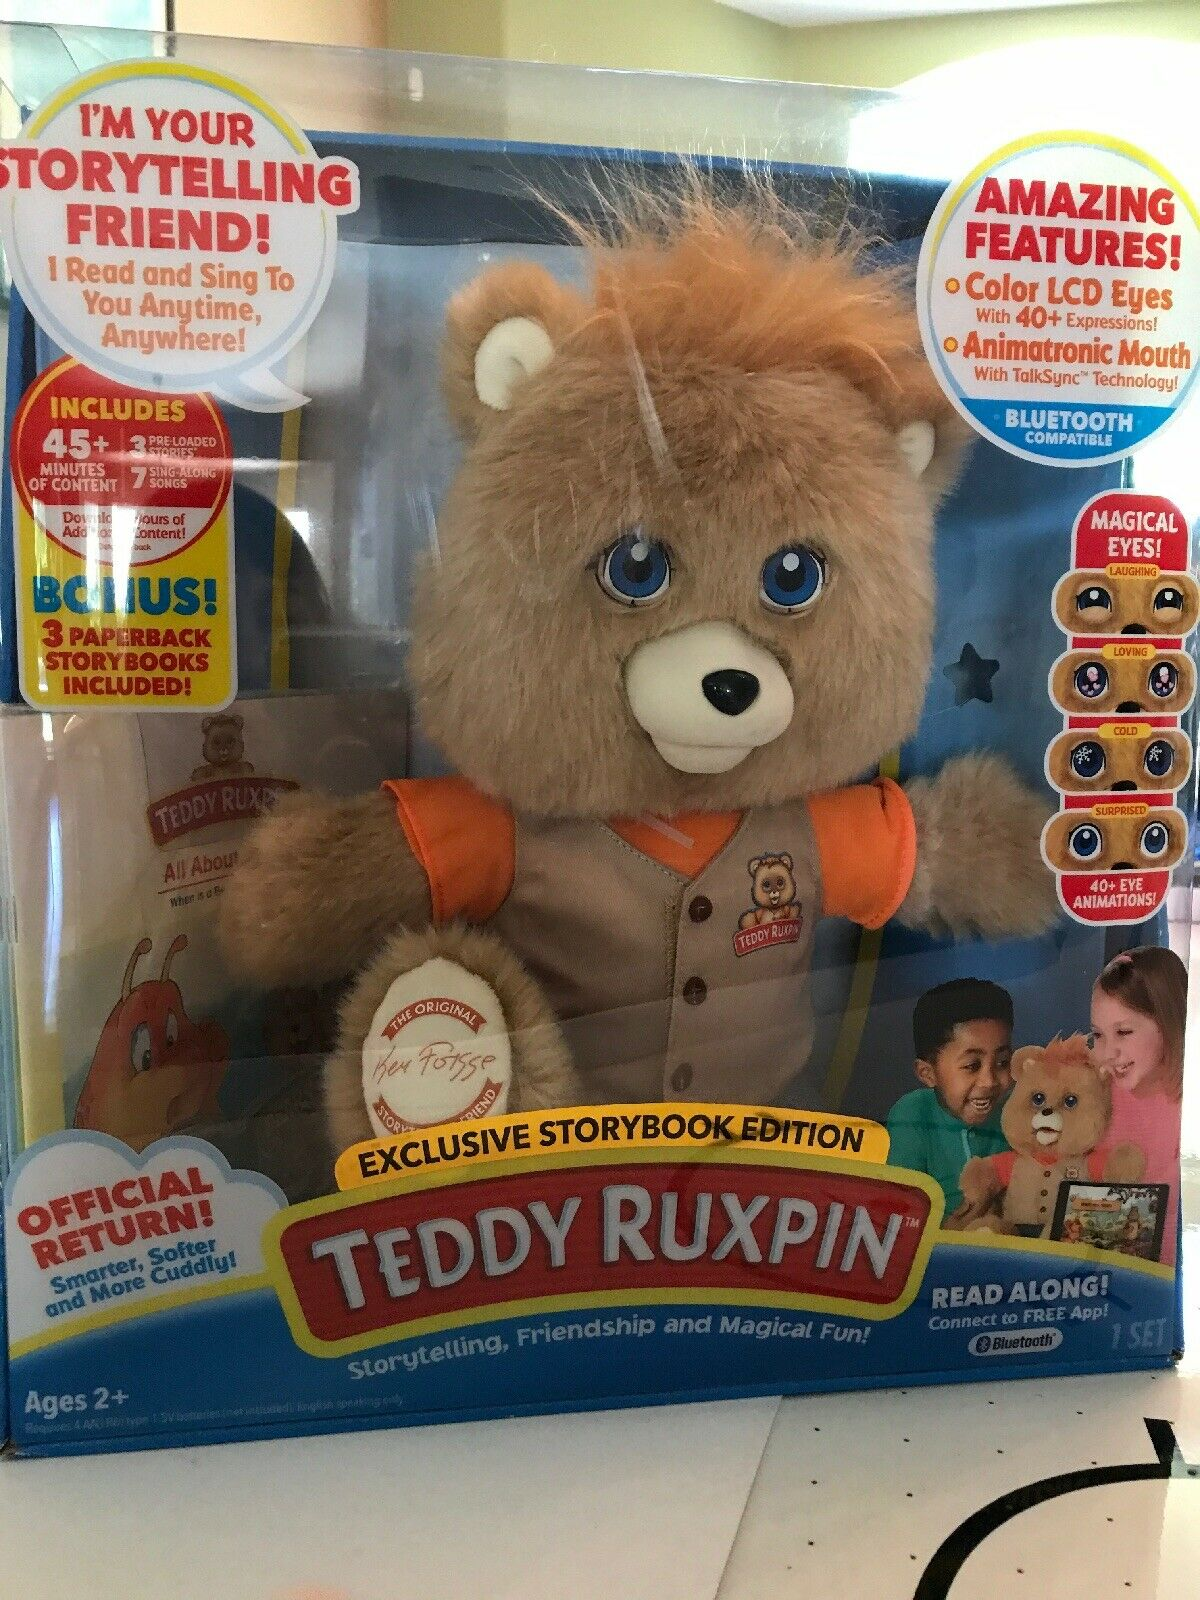 Teddy Ruxpin exclusive storybook edition NEW IN BOX